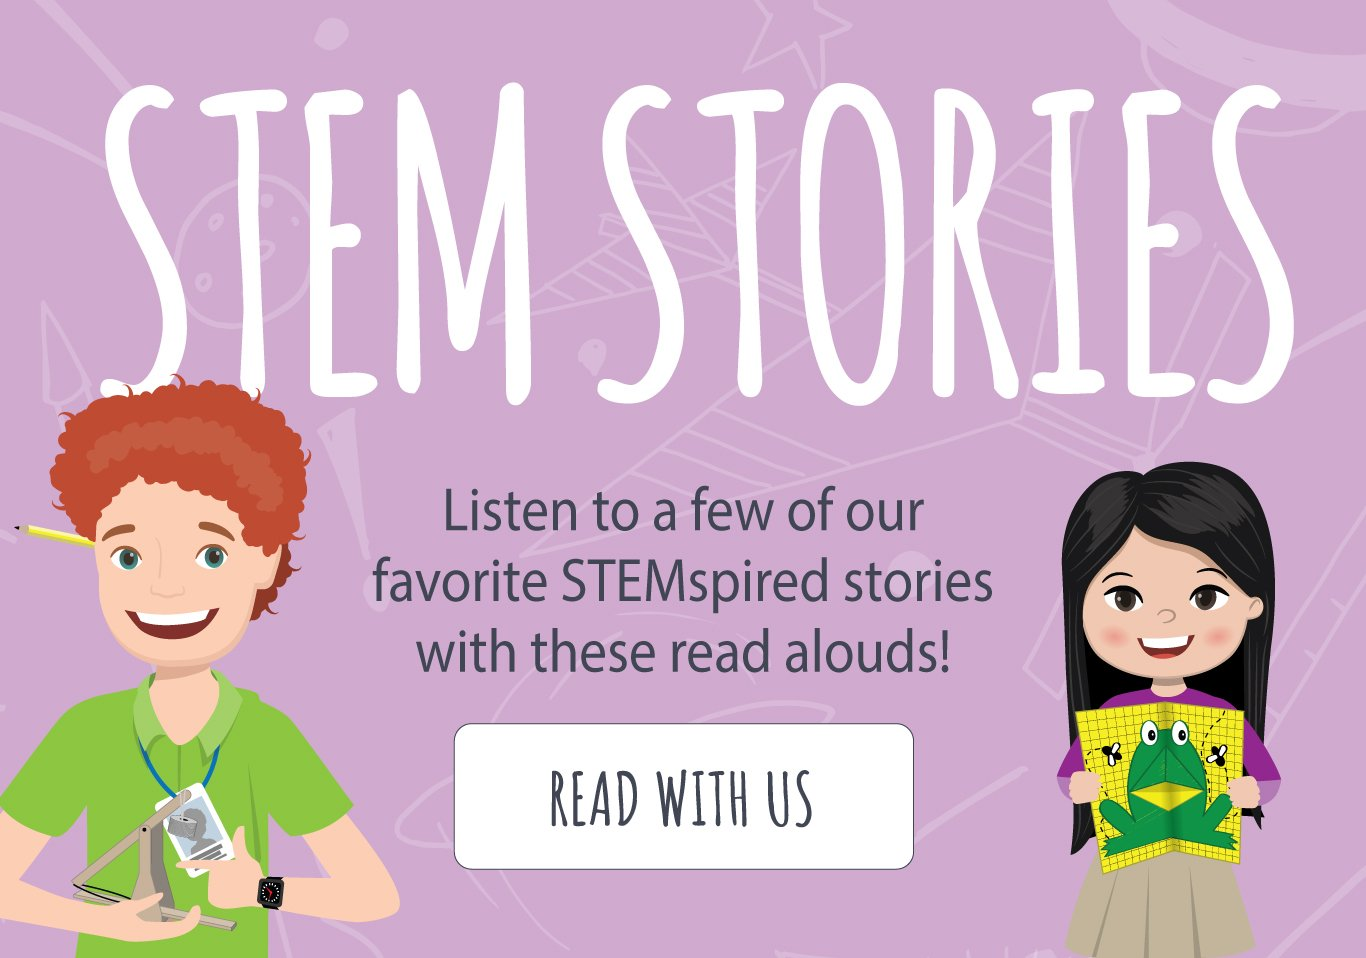 STEM STORIES – Listen to a few of our favorite STEMspired stories with these read alouds! READ WITH US